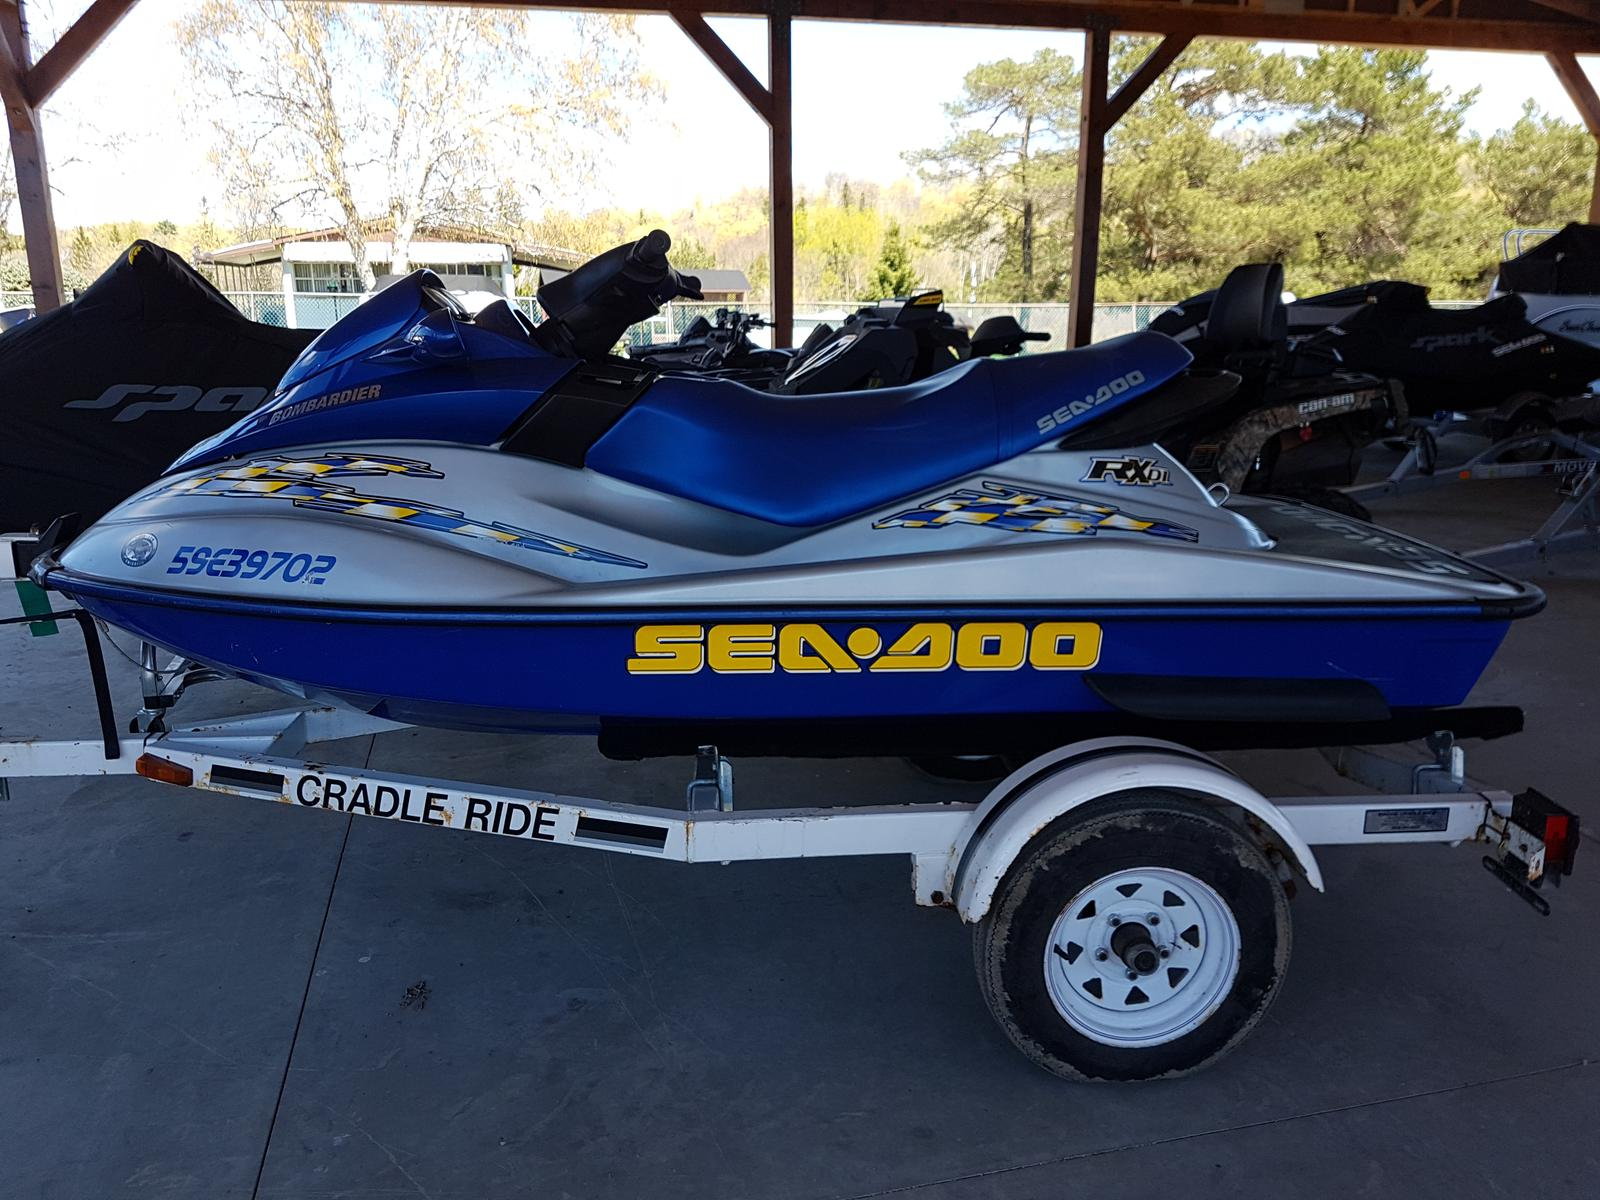 For Sale: 2001 Sea Doo Pwc Rx Di ft<br/>Harper Power Sports- Haliburton